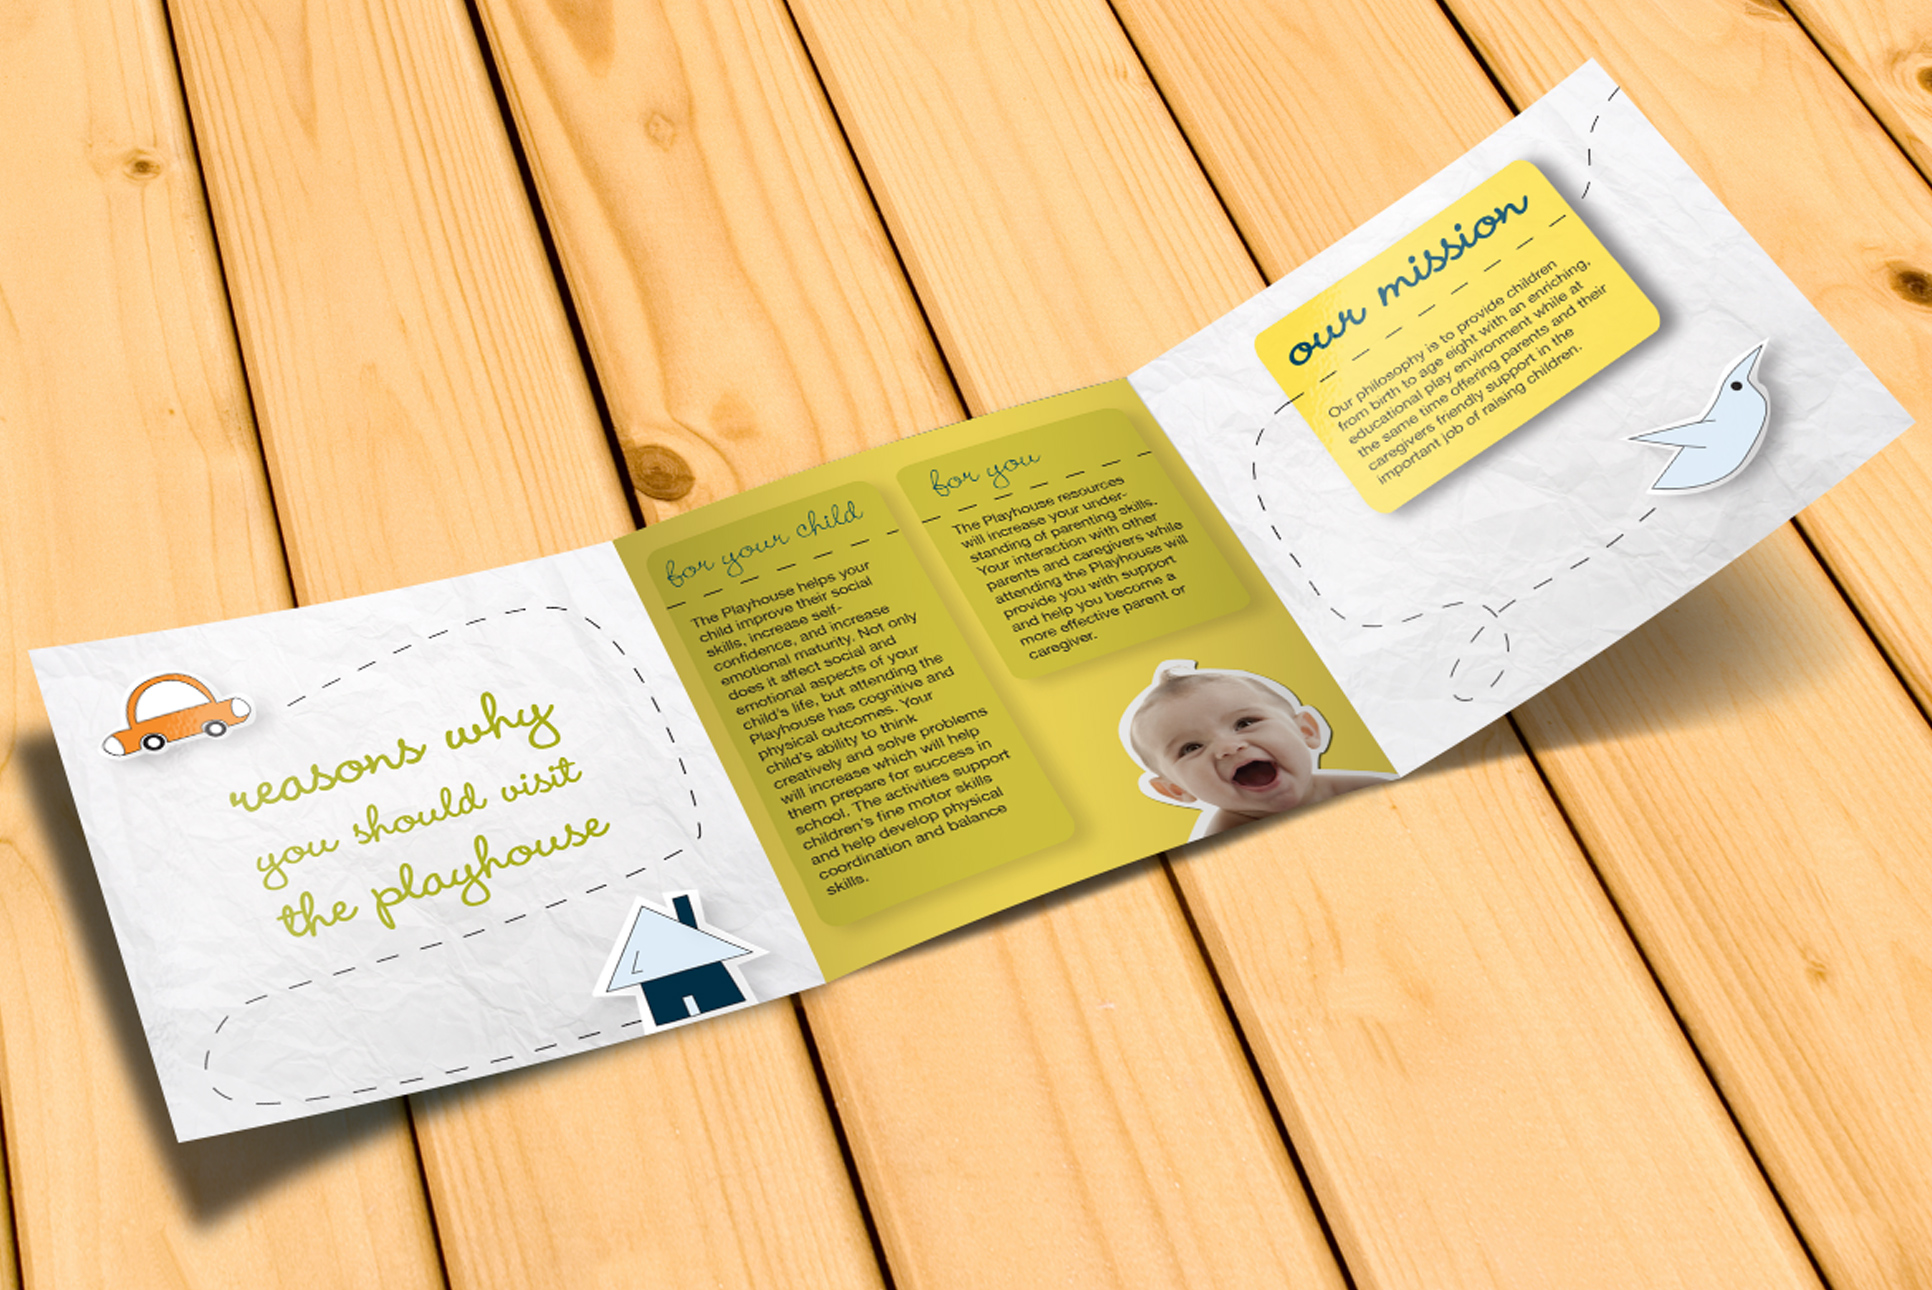 Trifold brochure design for the children's playhouse. Fun cut-out hand drawn elements are pieced together to make this a playful and happy design.